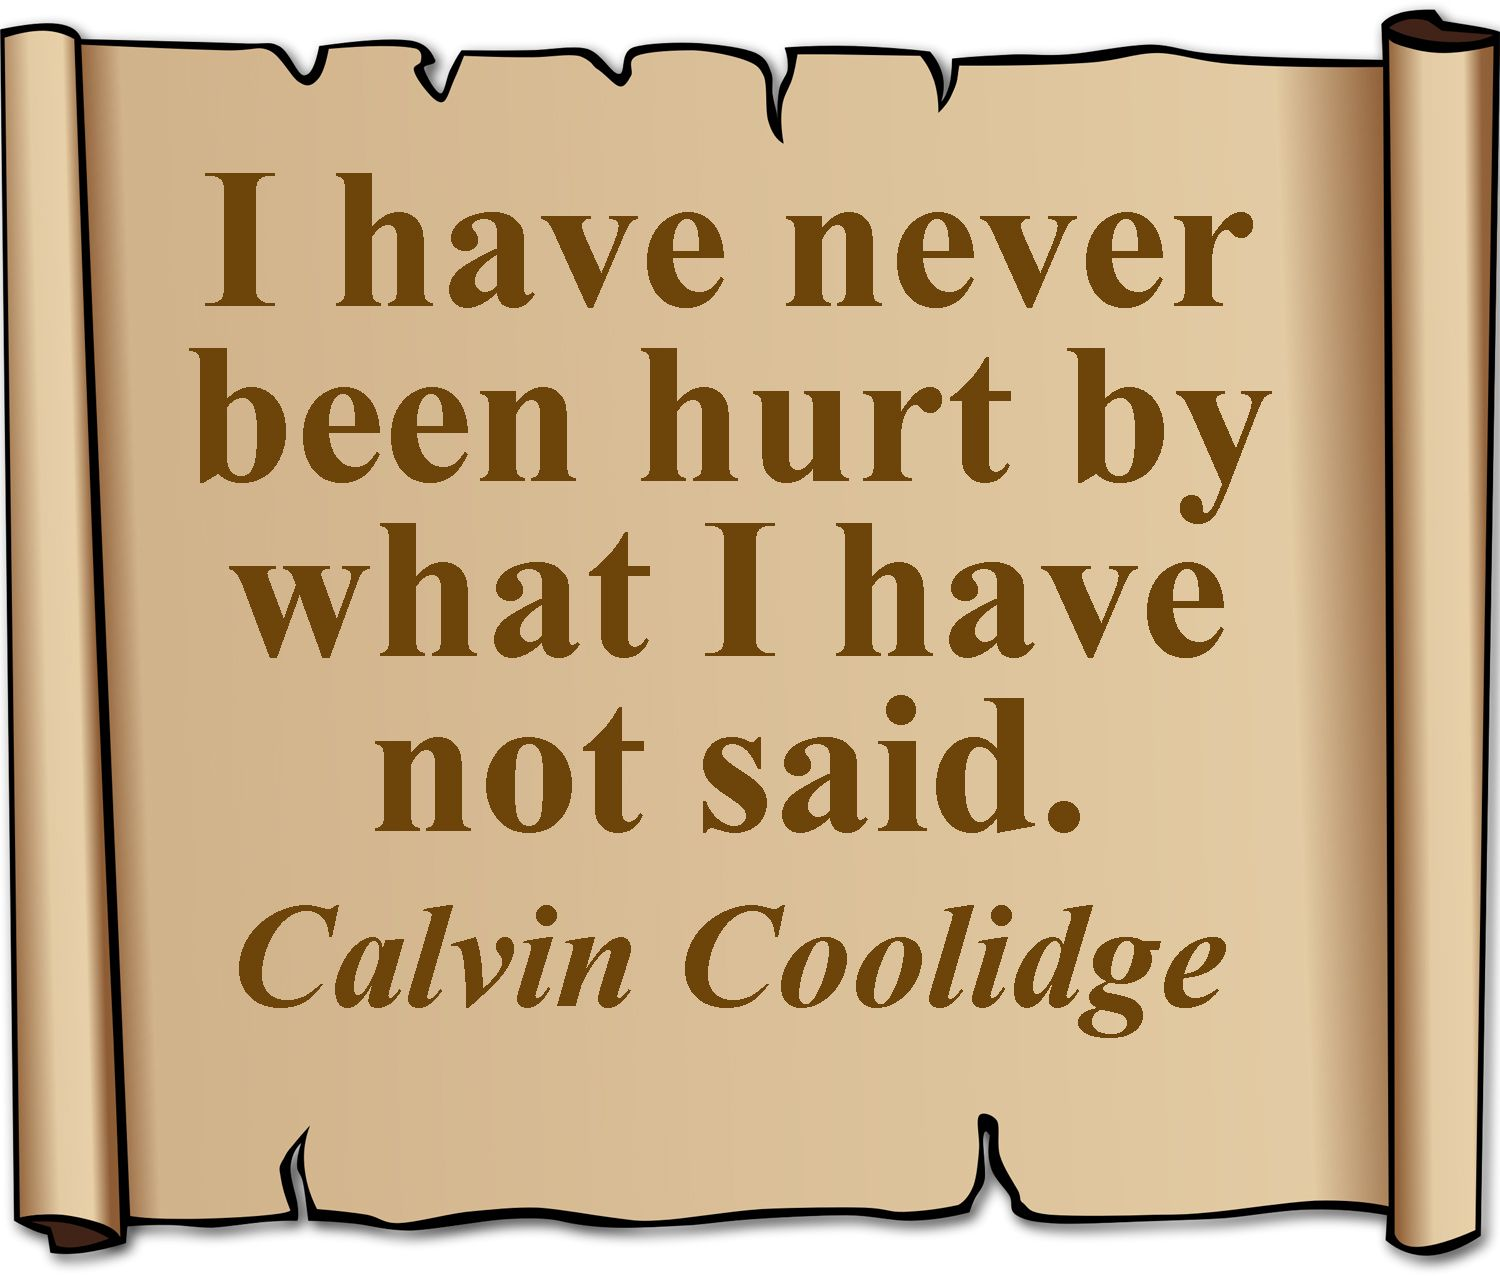 Calvin Coolidge Quotes Persistence: Calvin Coolidge Quotes, Literary Quotes